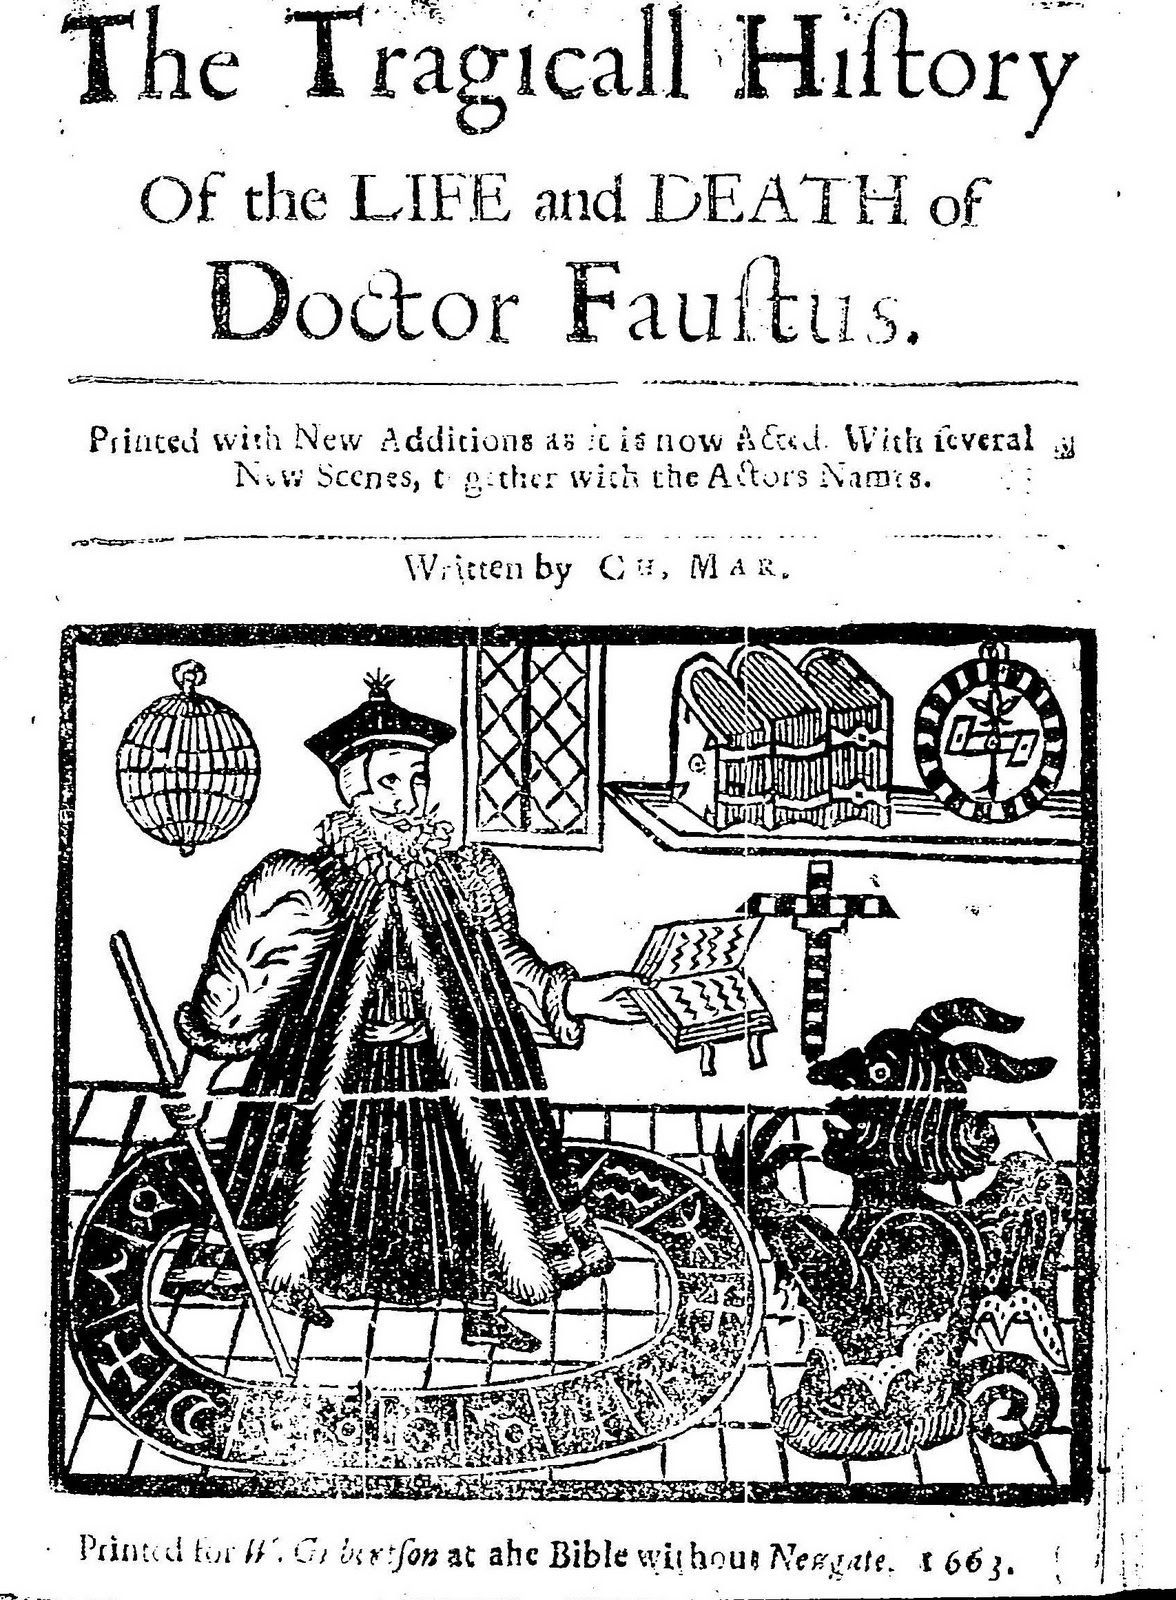 the tragical history or the life and death of doctor faustus by the tragical history or the life and death of doctor faustus by christopher marlowe